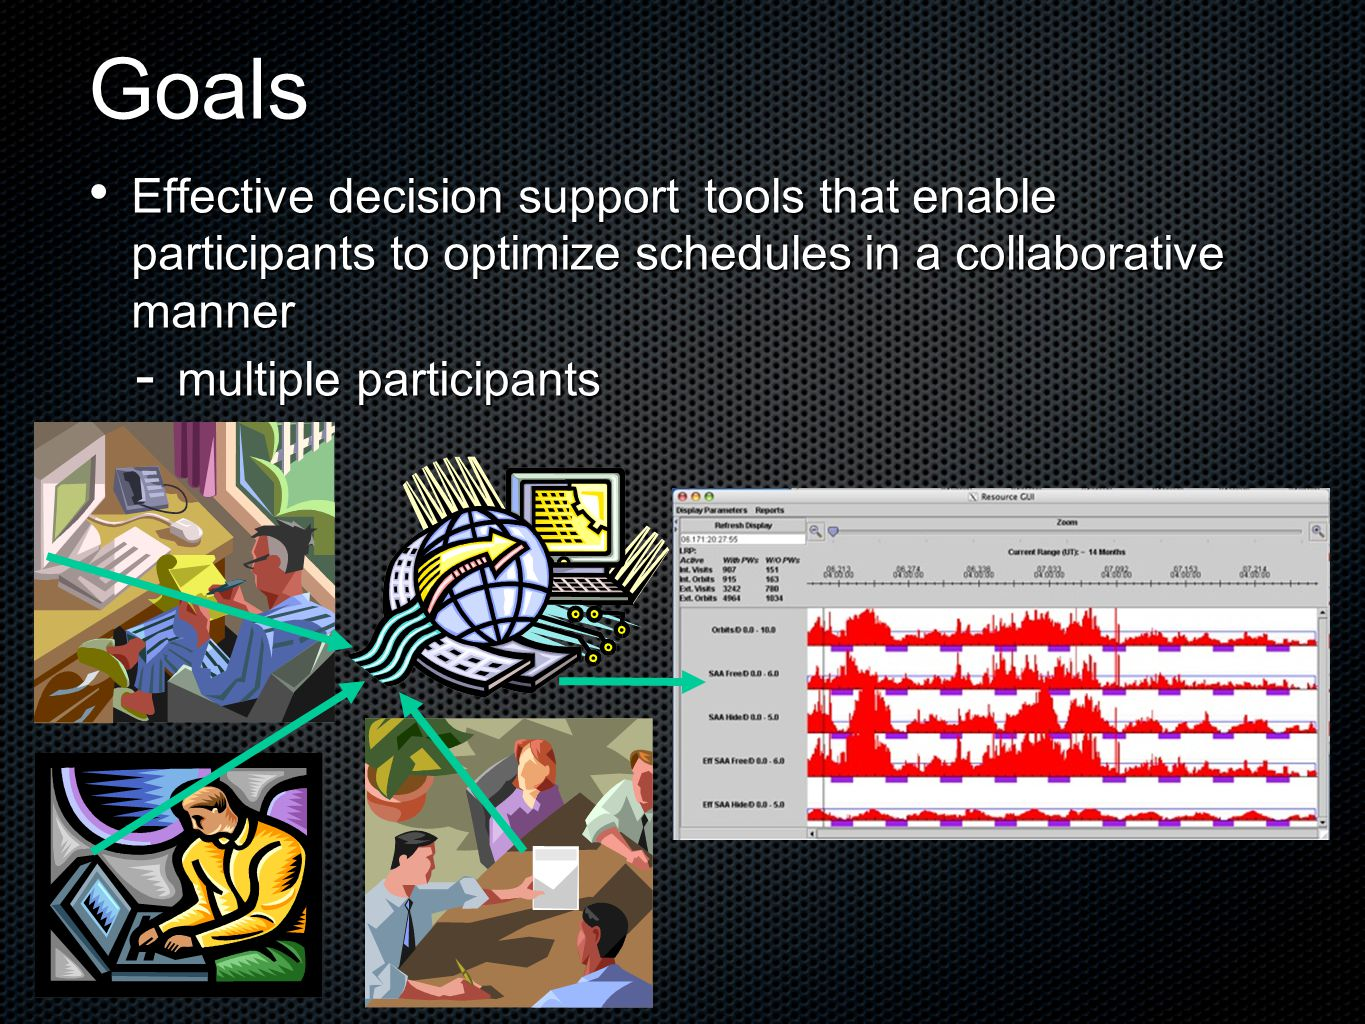 Goals Effective decision support tools that enable participants to optimize schedules in a collaborative manner Effective decision support tools that enable participants to optimize schedules in a collaborative manner  multiple participants